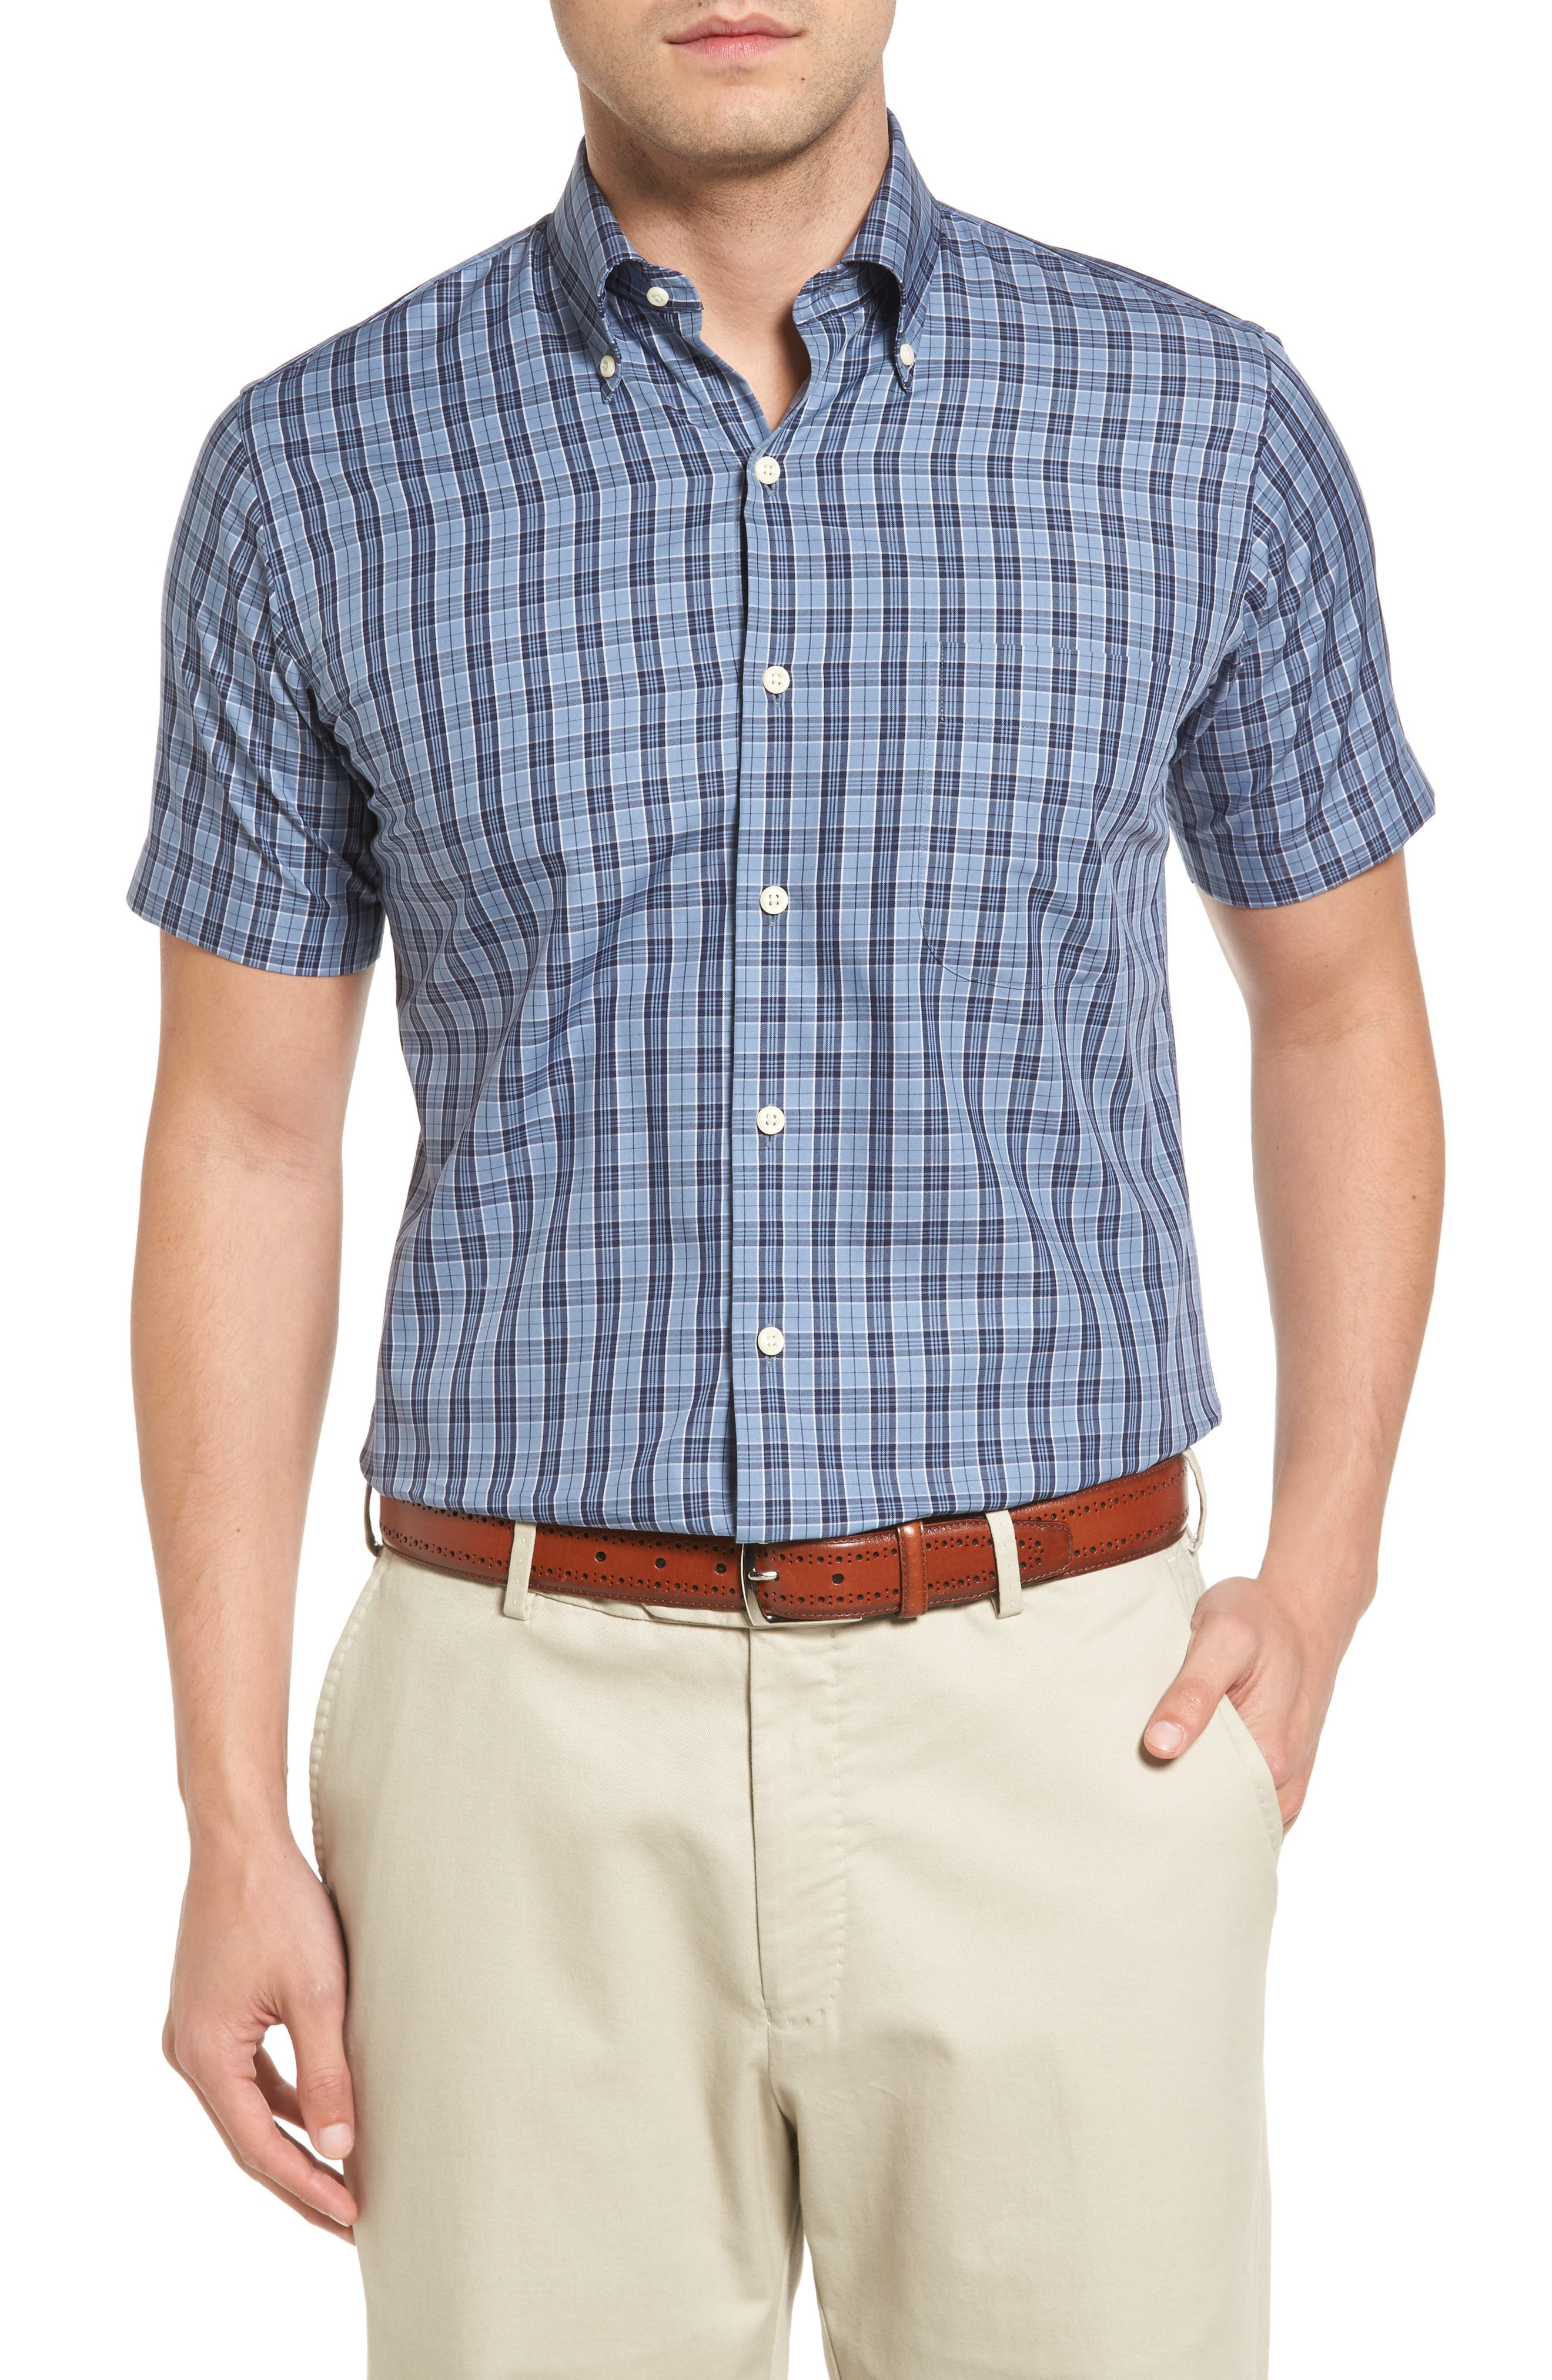 Regular Fit Short Sleeve Stormy Plaid Sport Shirt,                         Main,                         color, 439